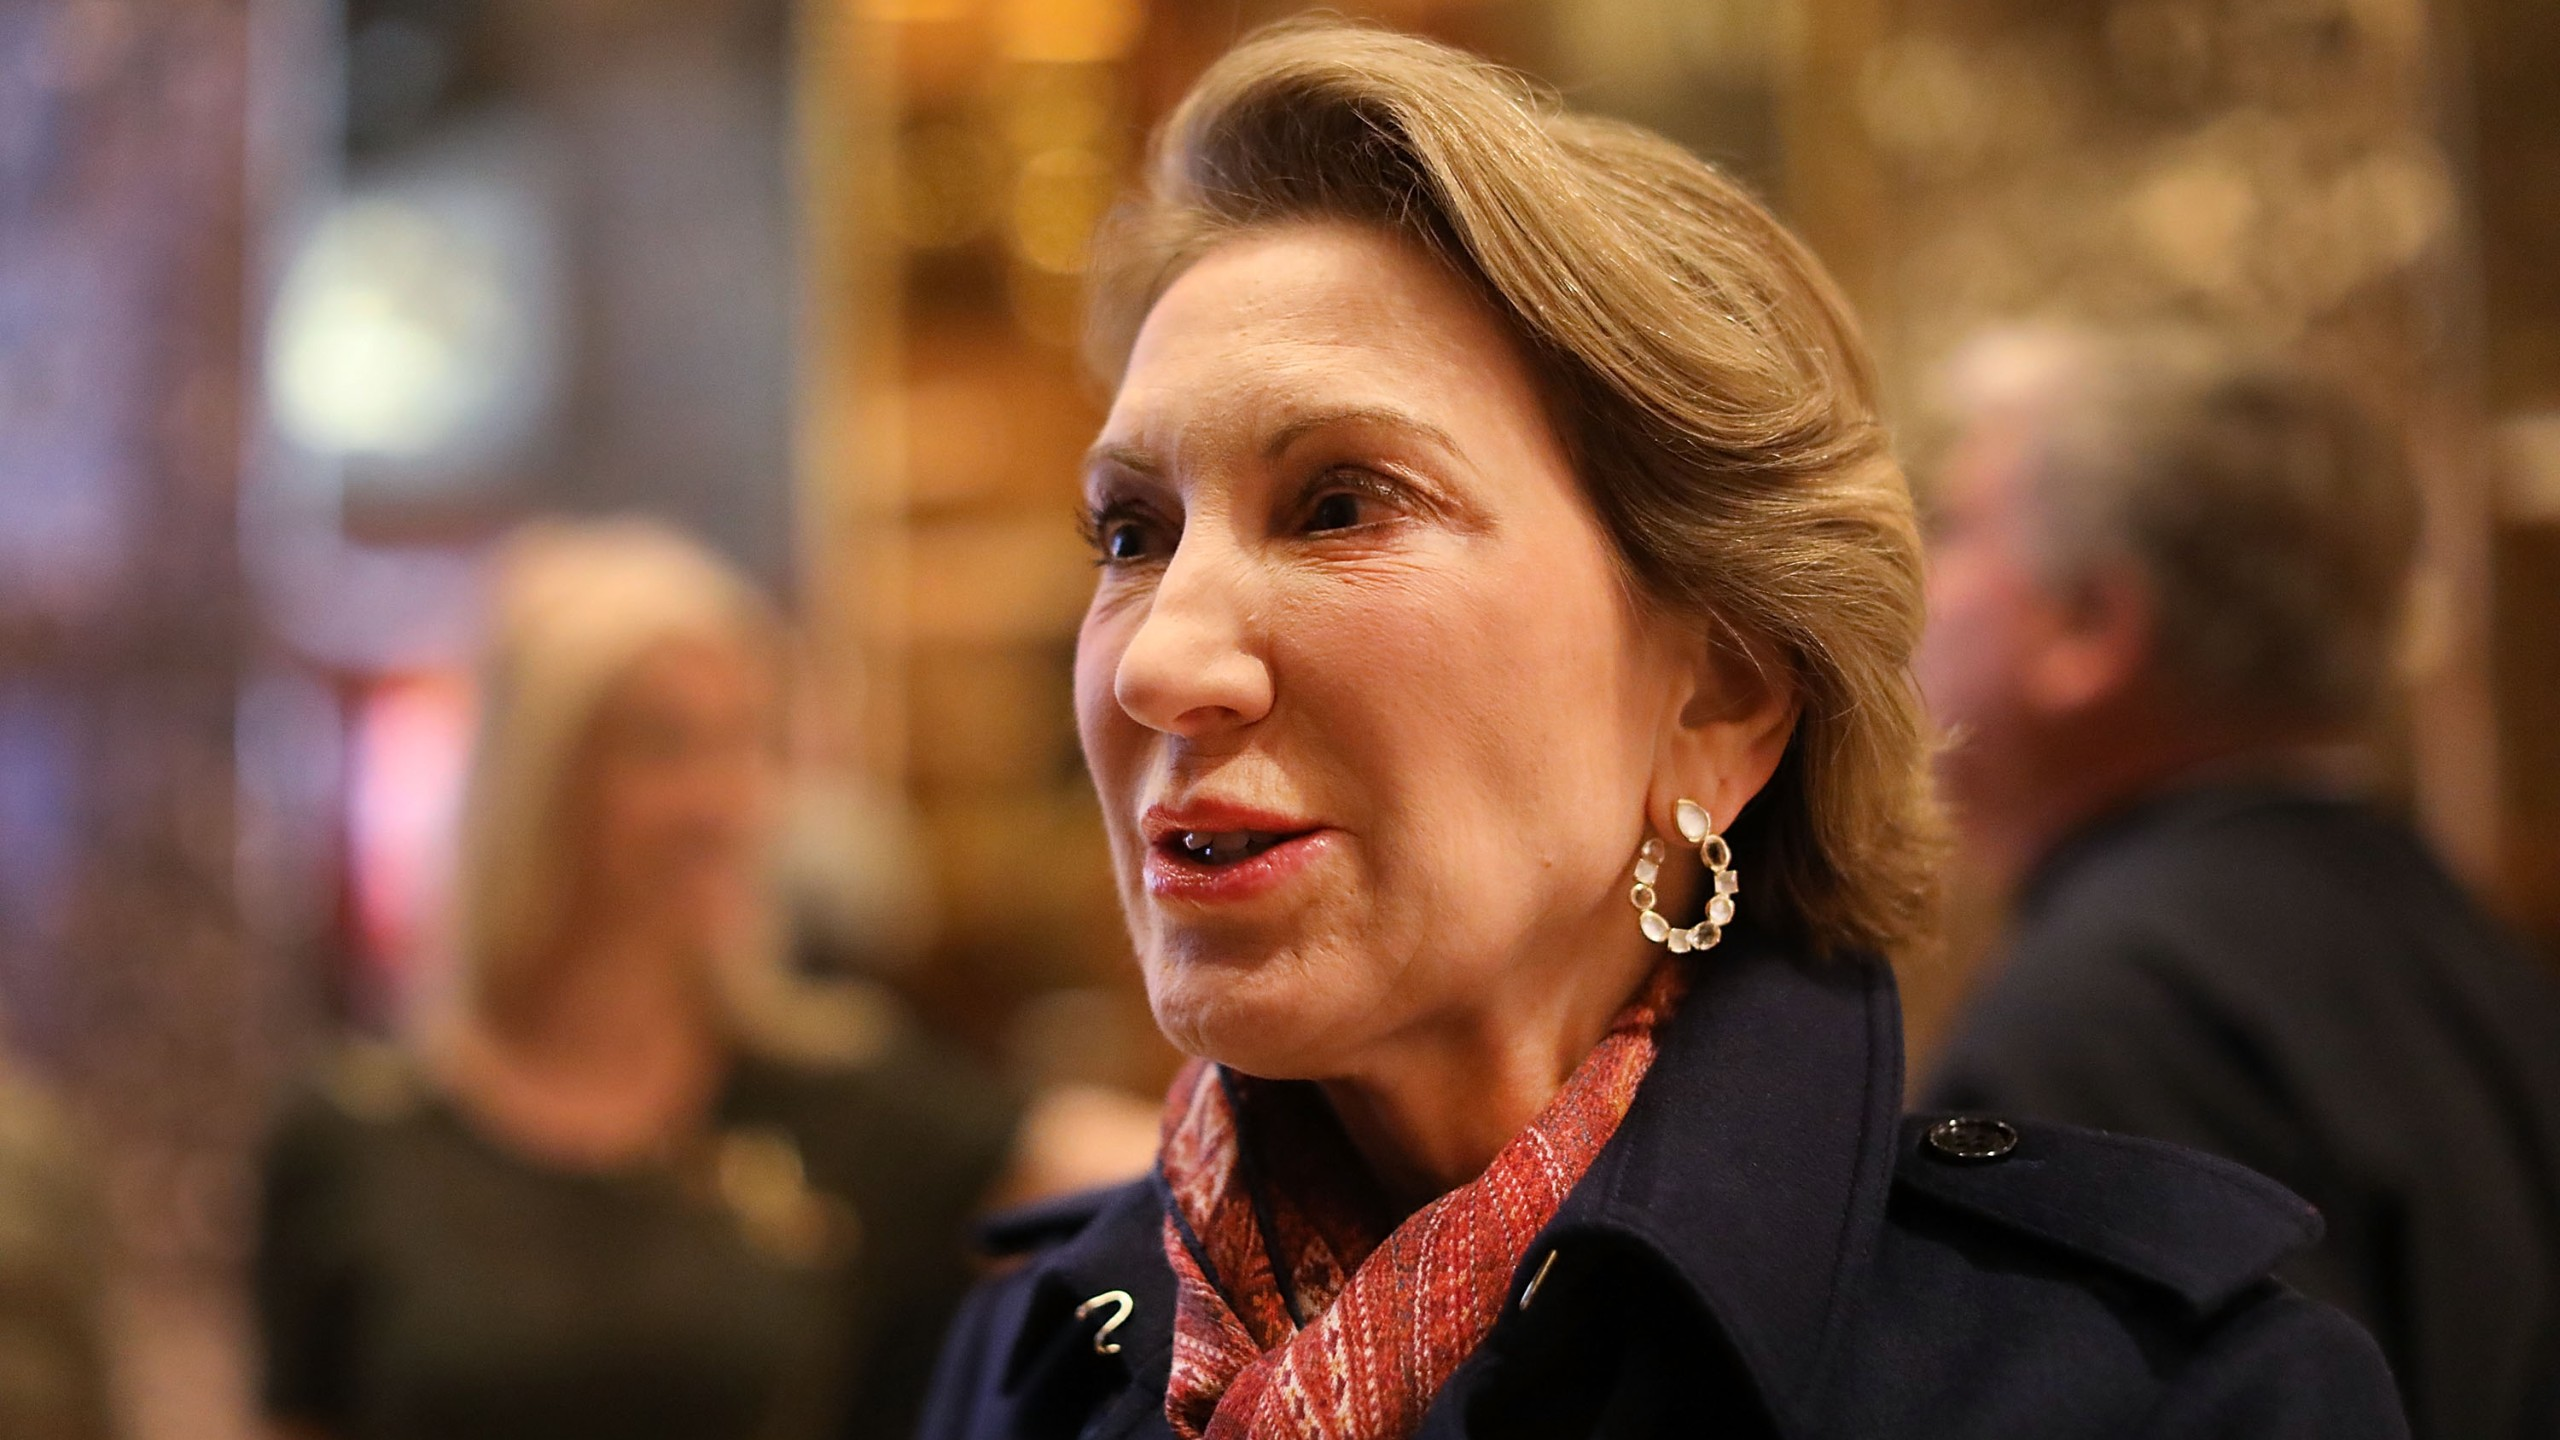 Carly Fiorina speaks to the media after a meeting at Trump Tower on Dec. 12, 2016 in New York City. (Credit: Spencer Platt/Getty Images)